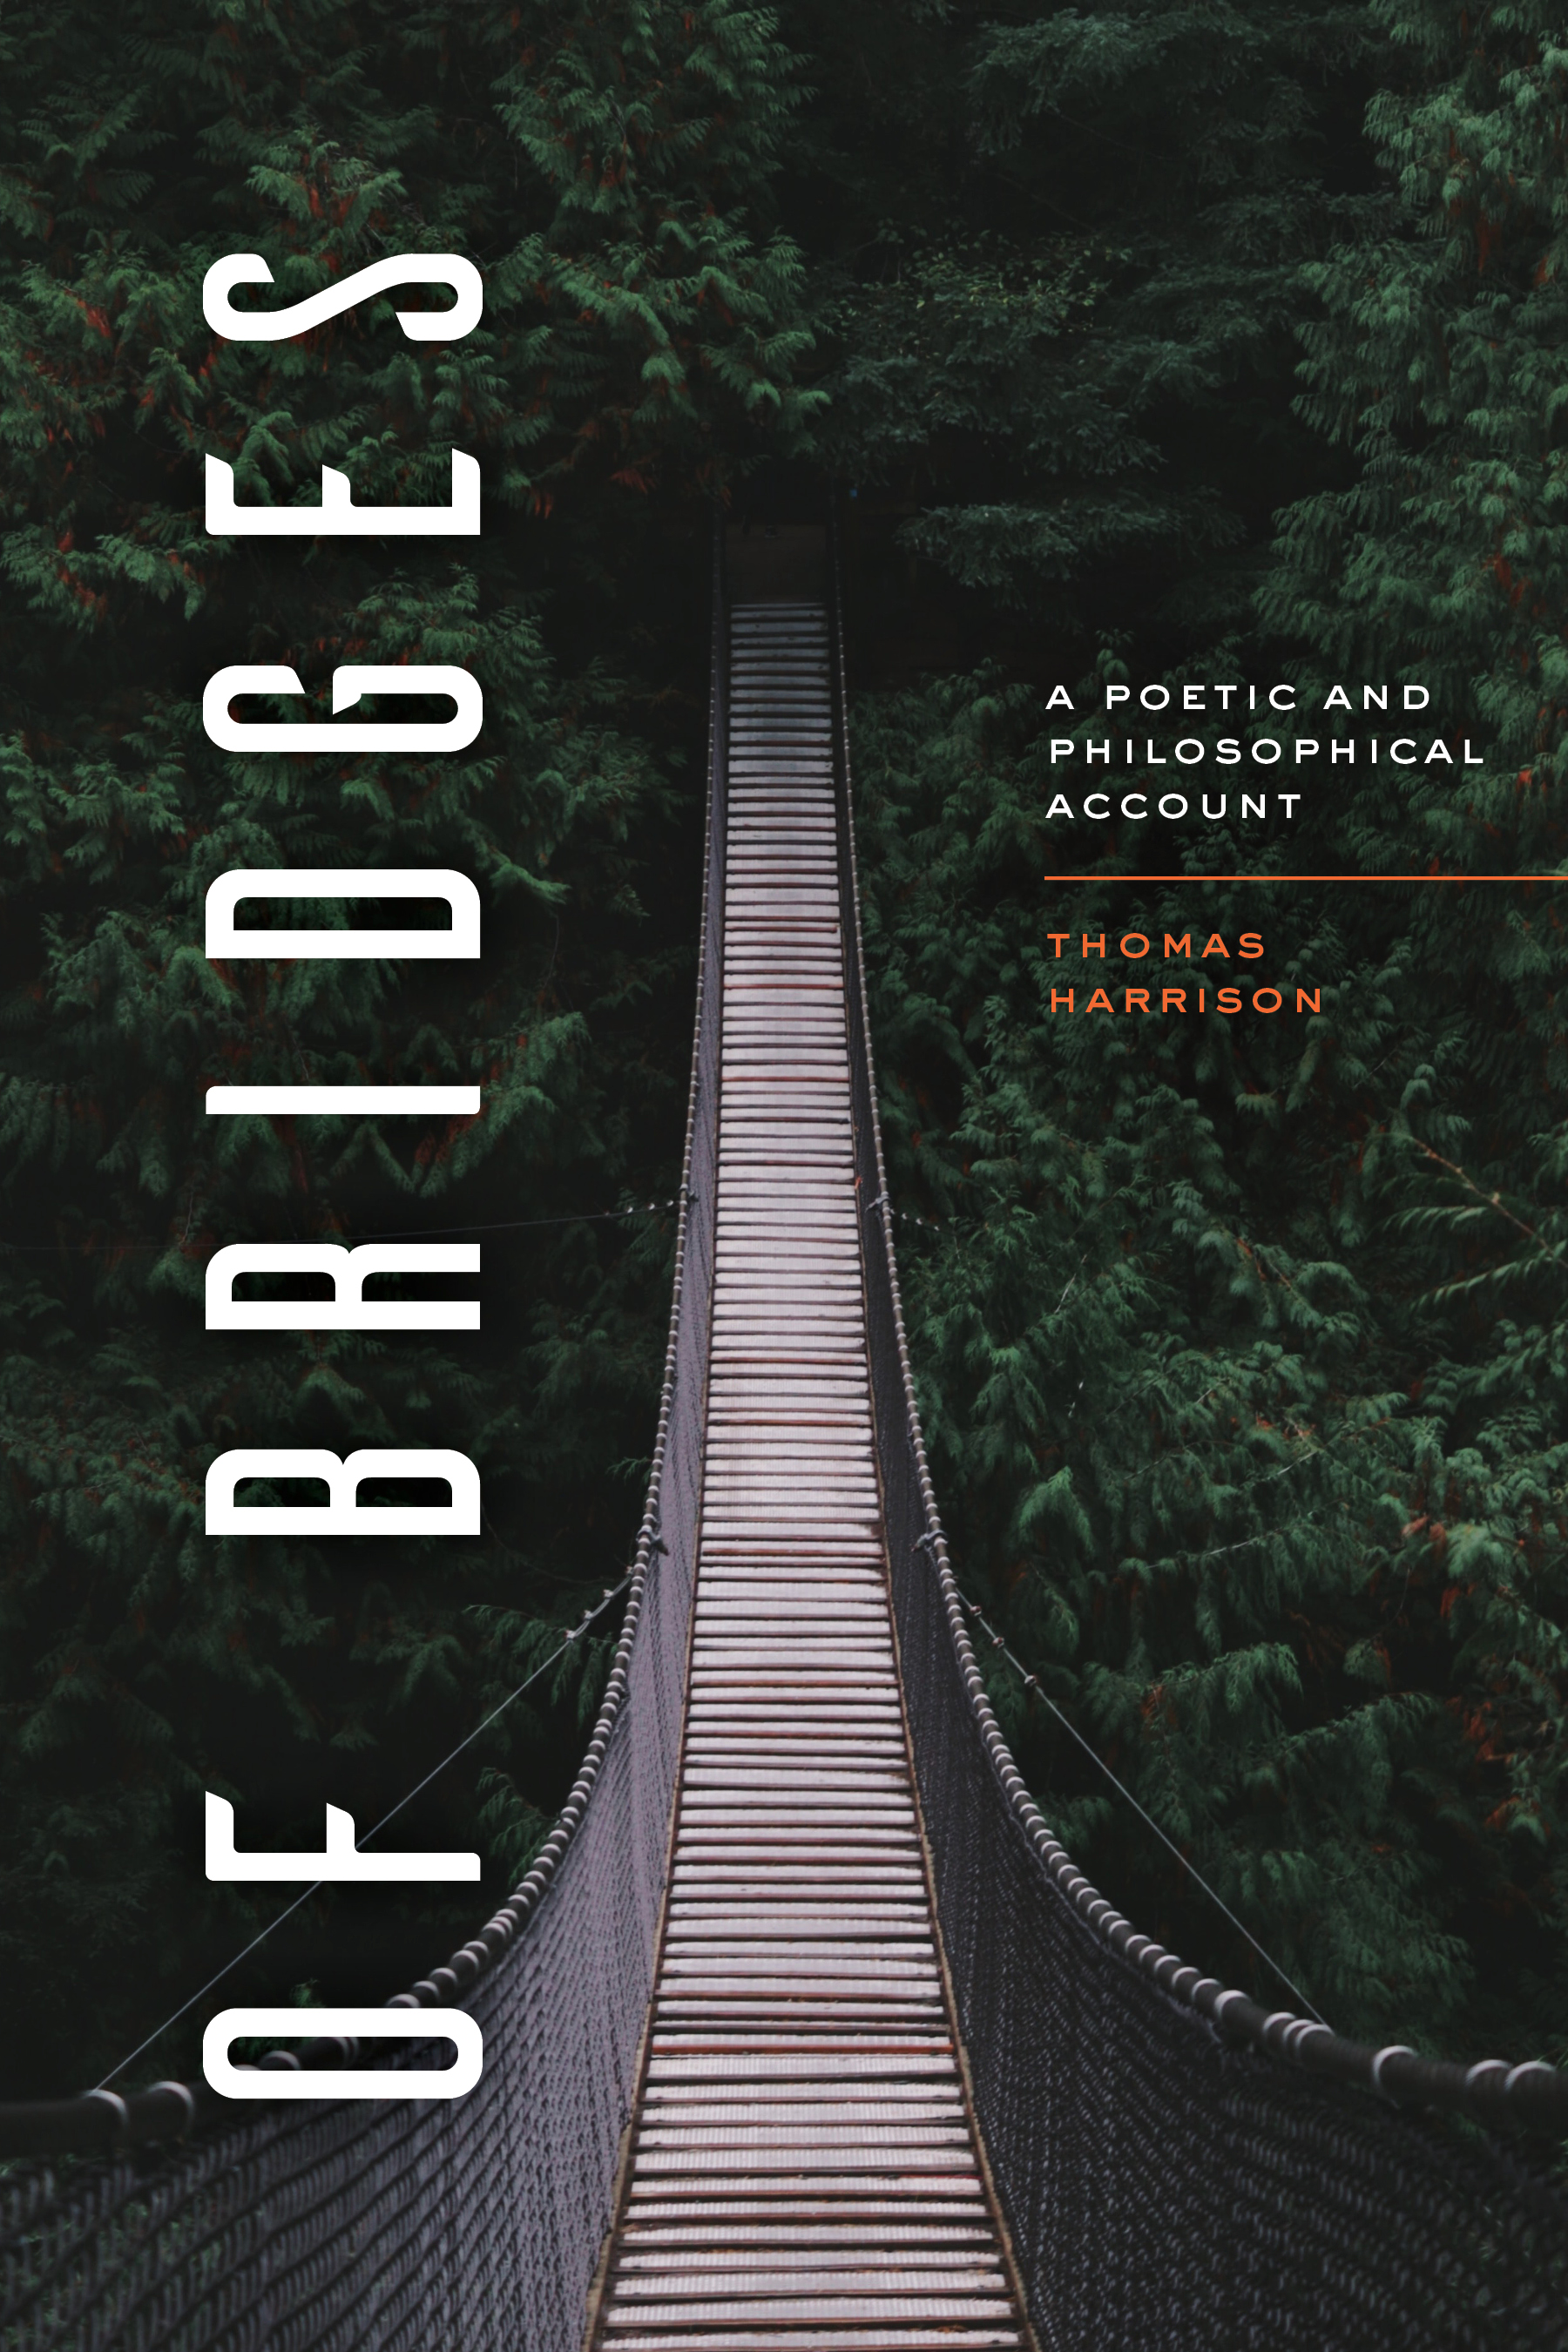 T. Harrison, Of Bridges. A Poetic and Philosophical Account